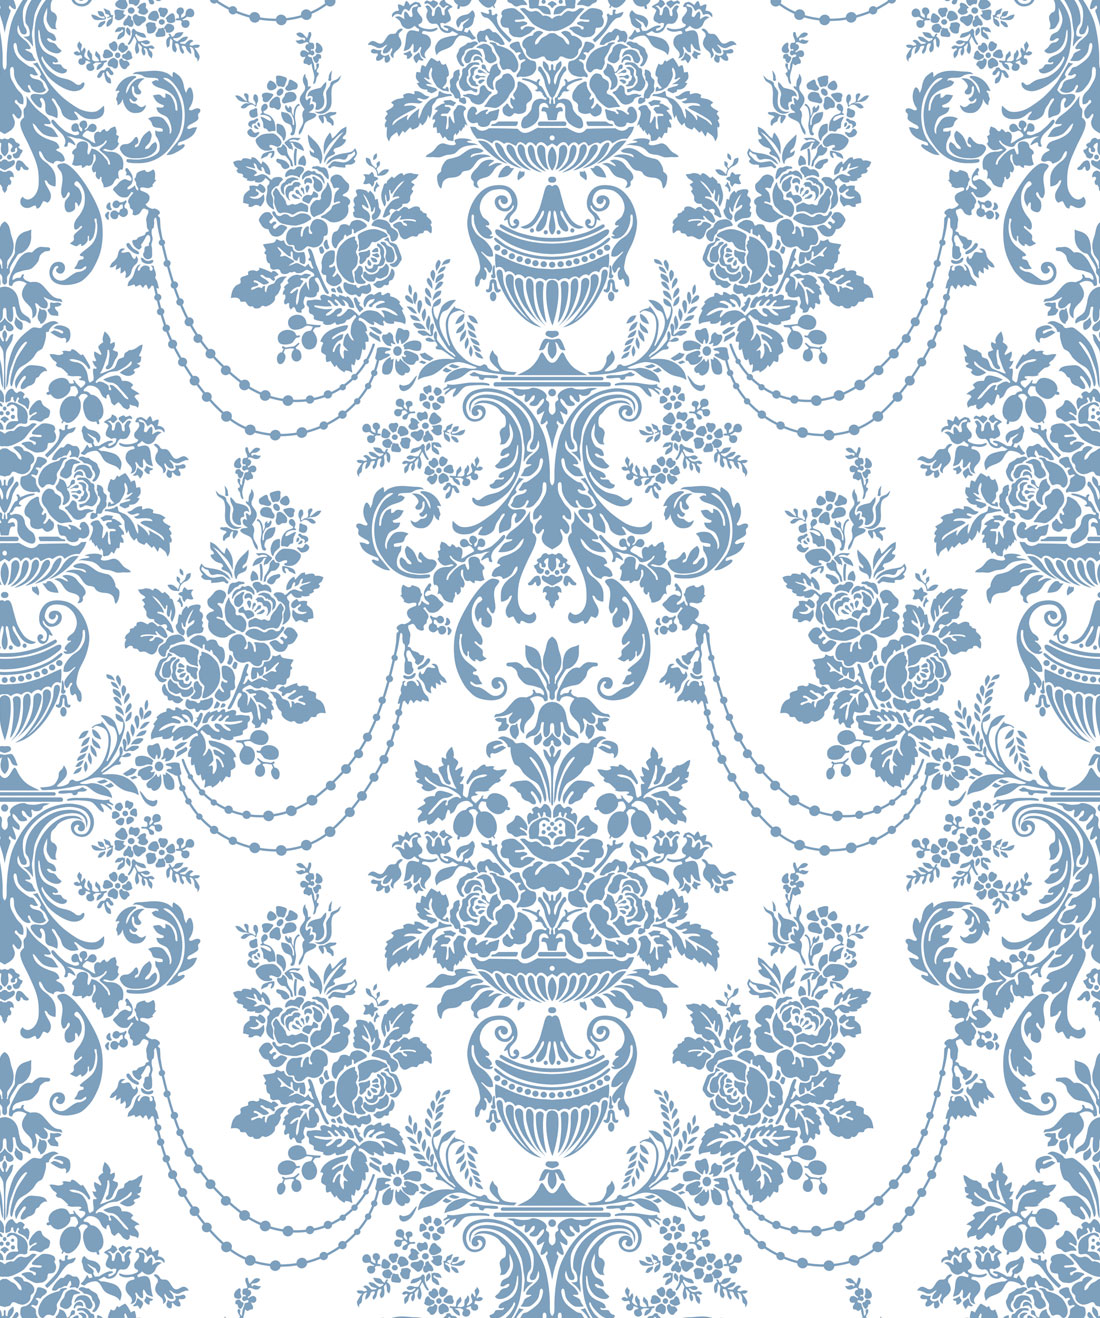 Imperial Removable Wallpaper